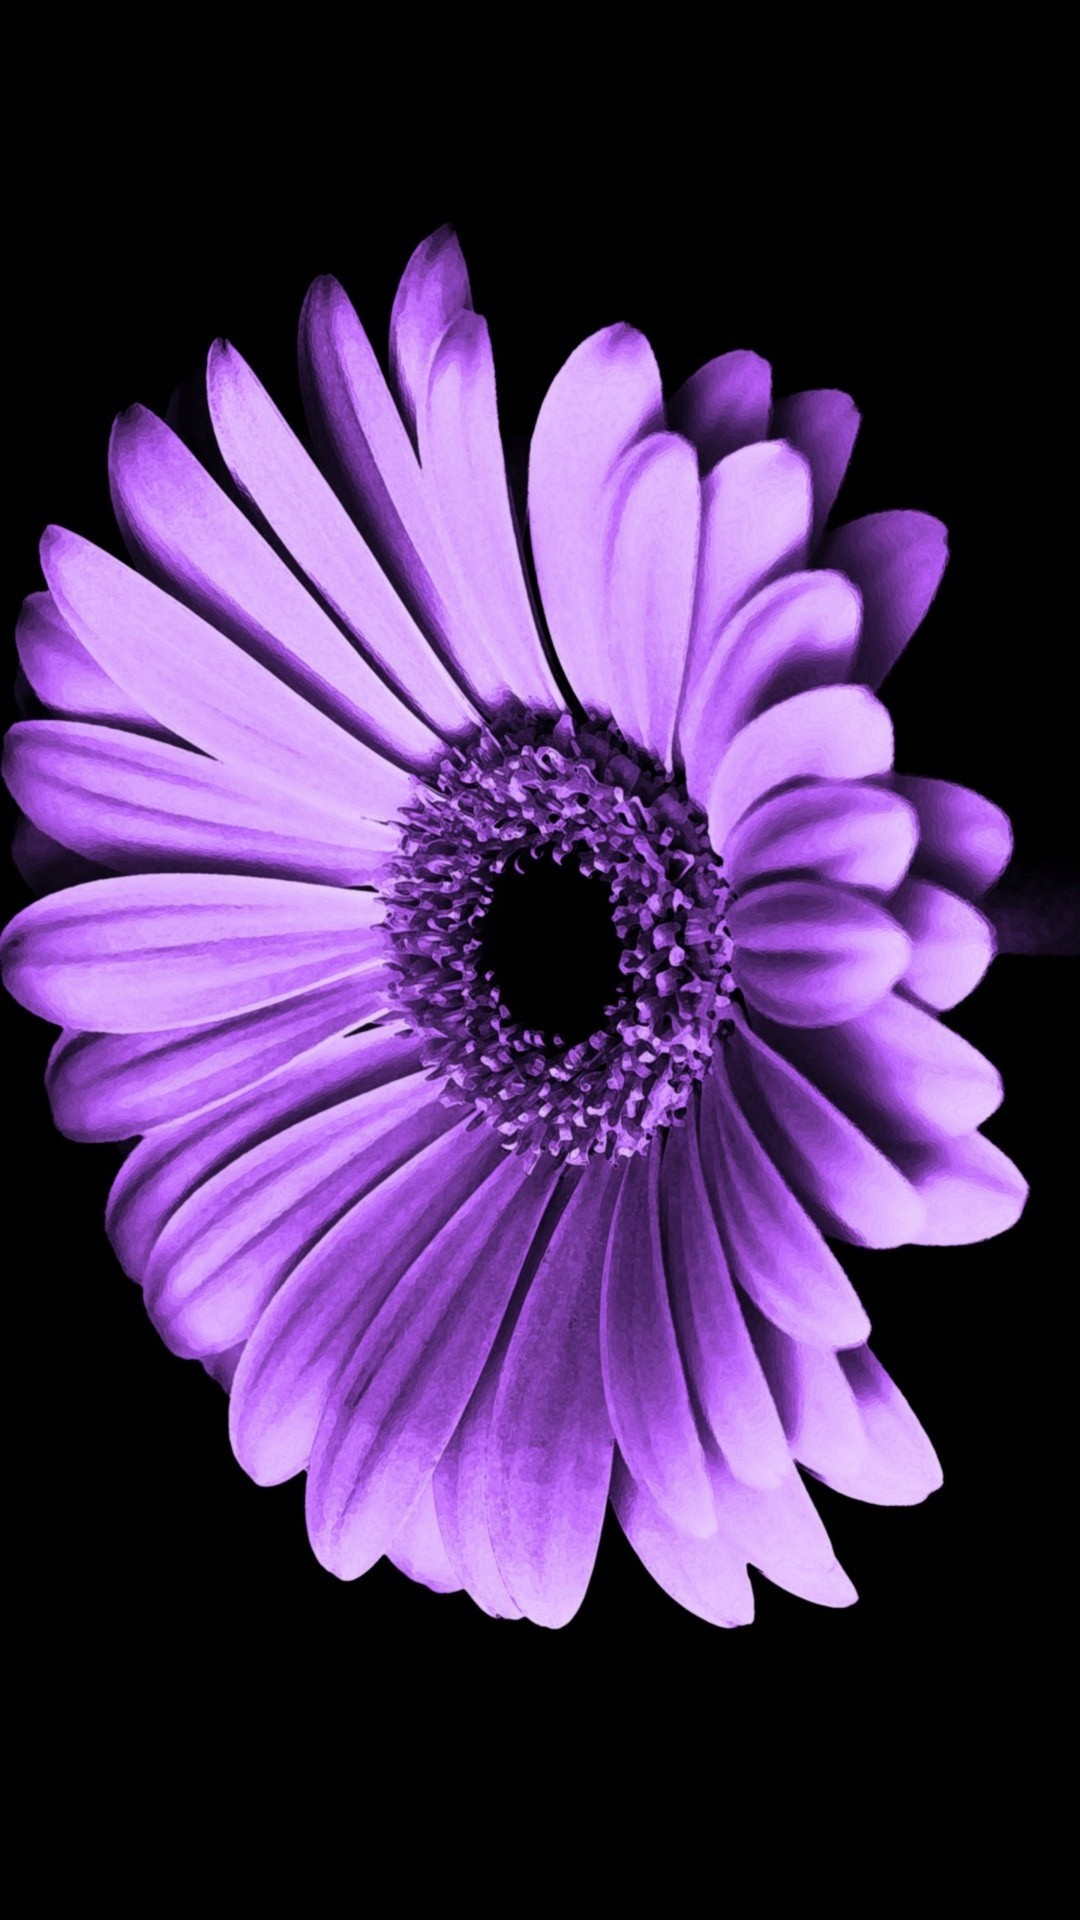 purple flowers iphone wallpaper hd 1816